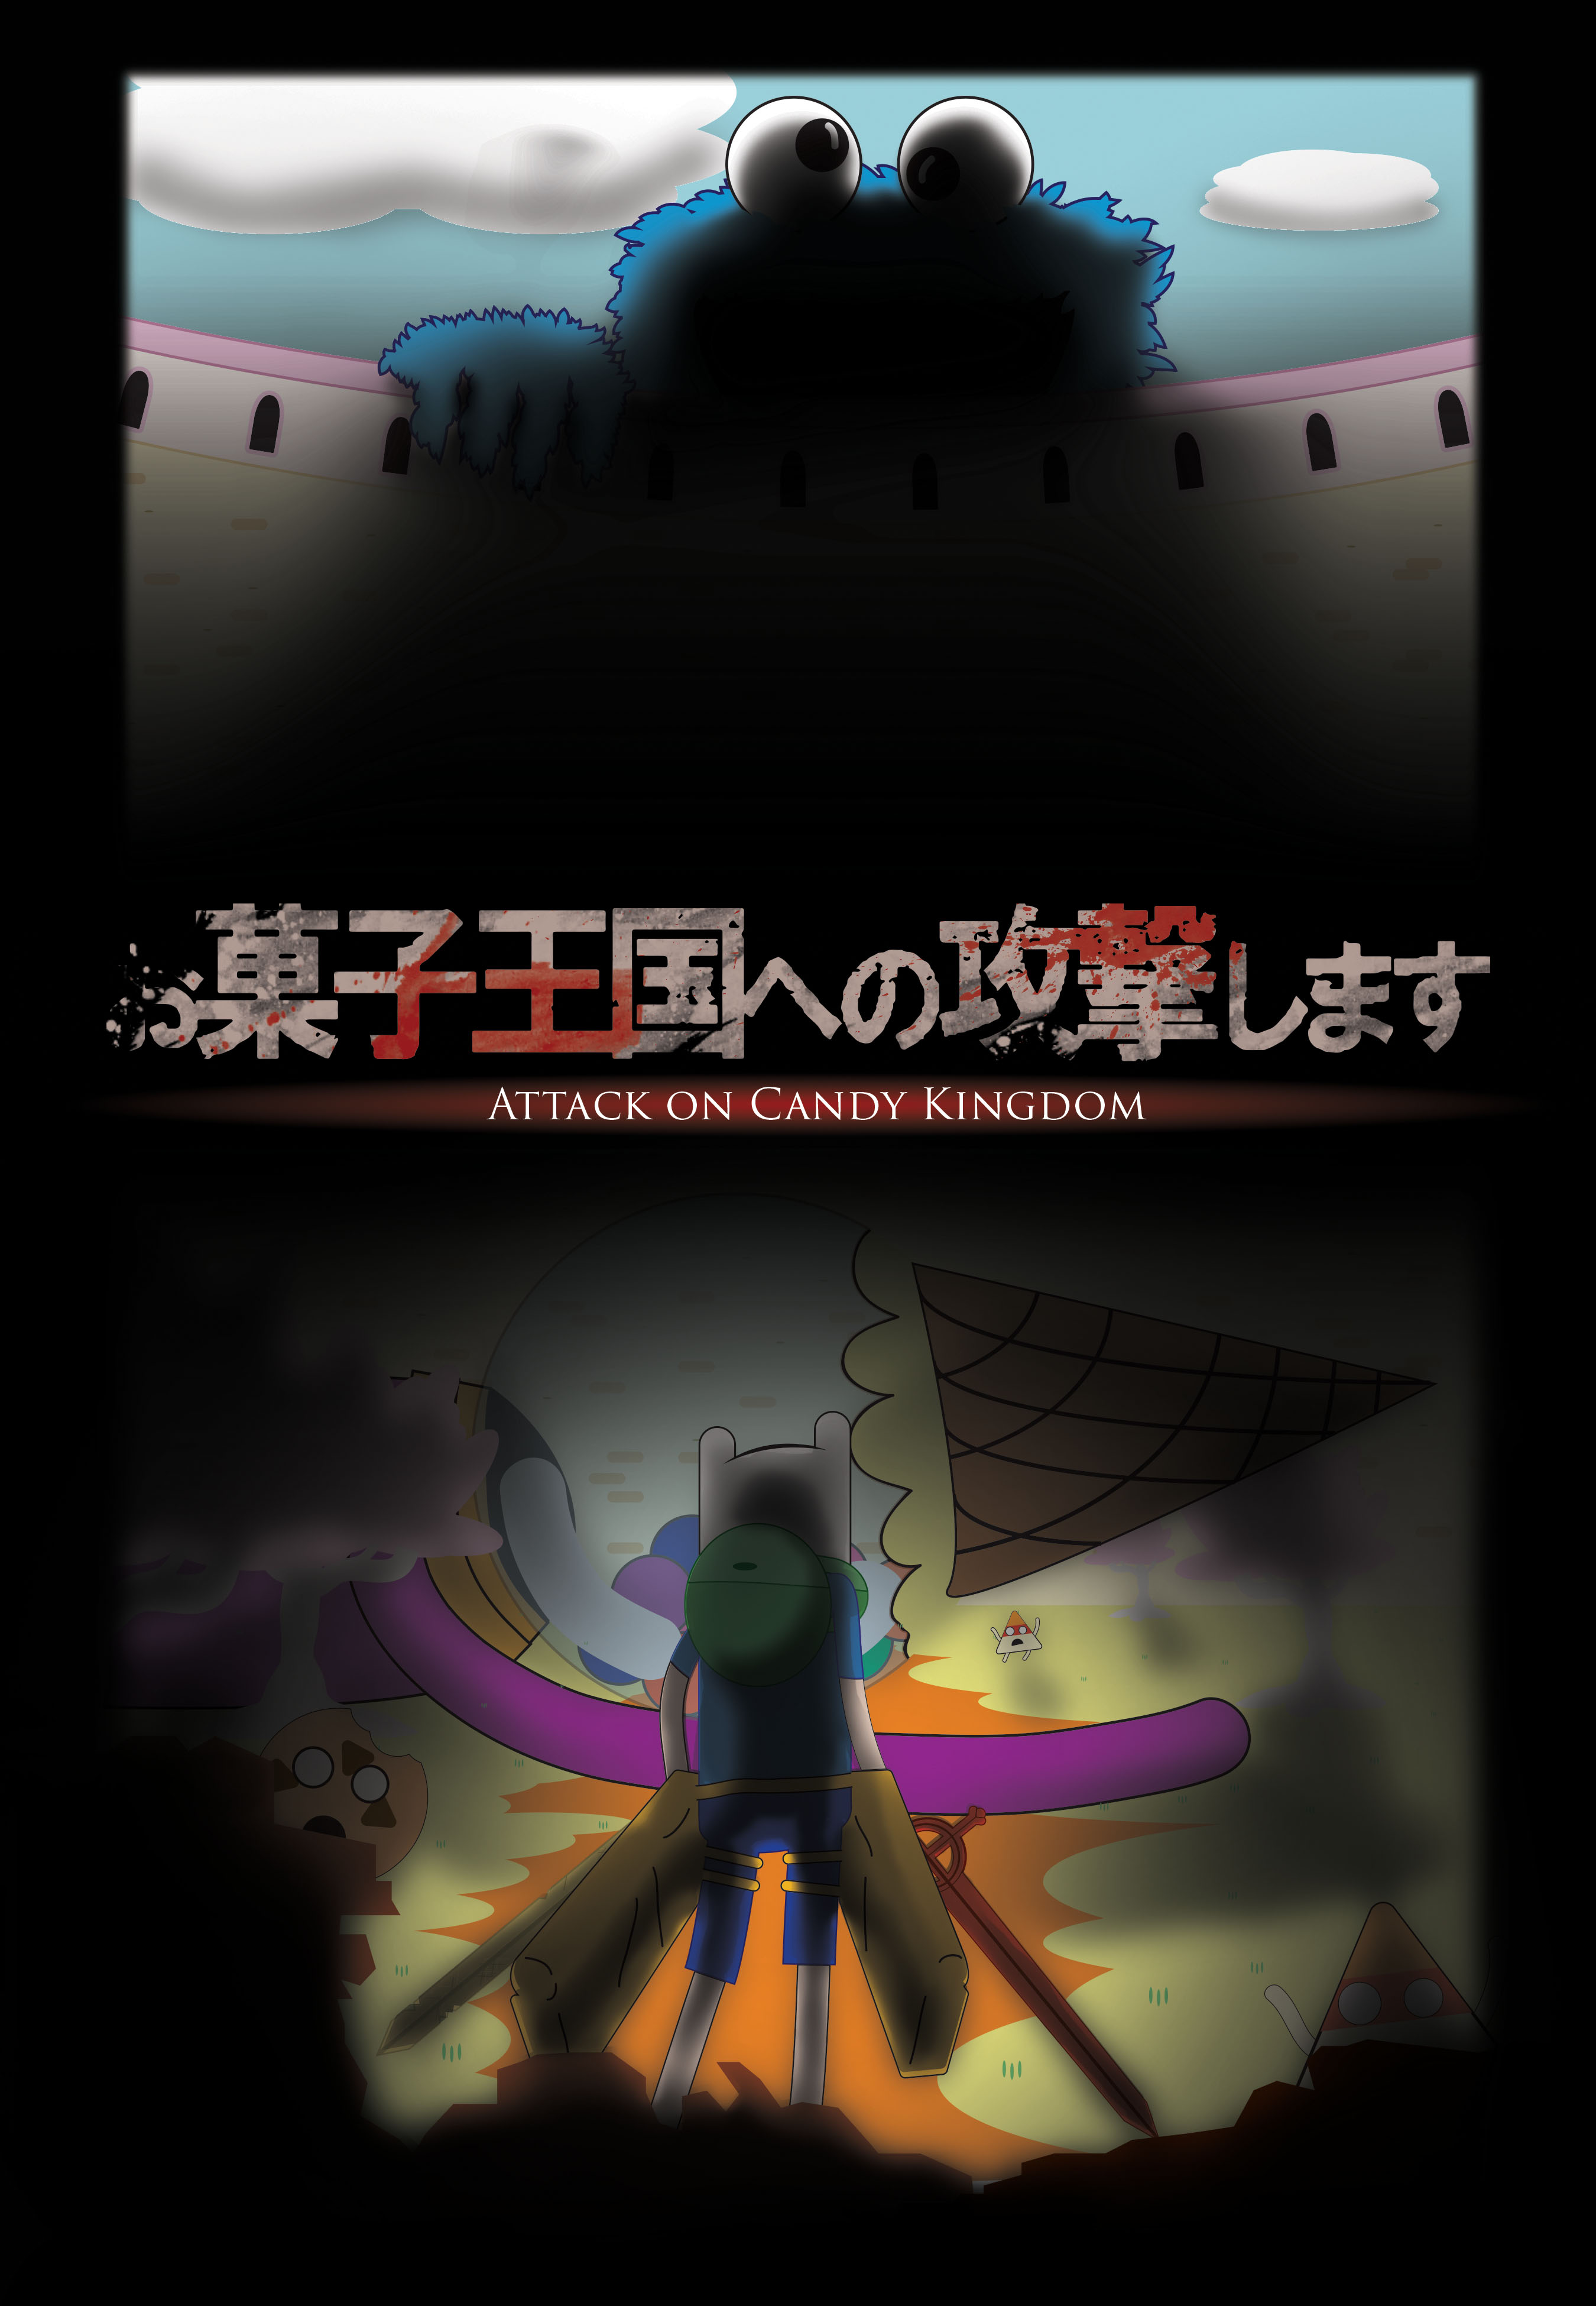 Attack on Candy kingdom